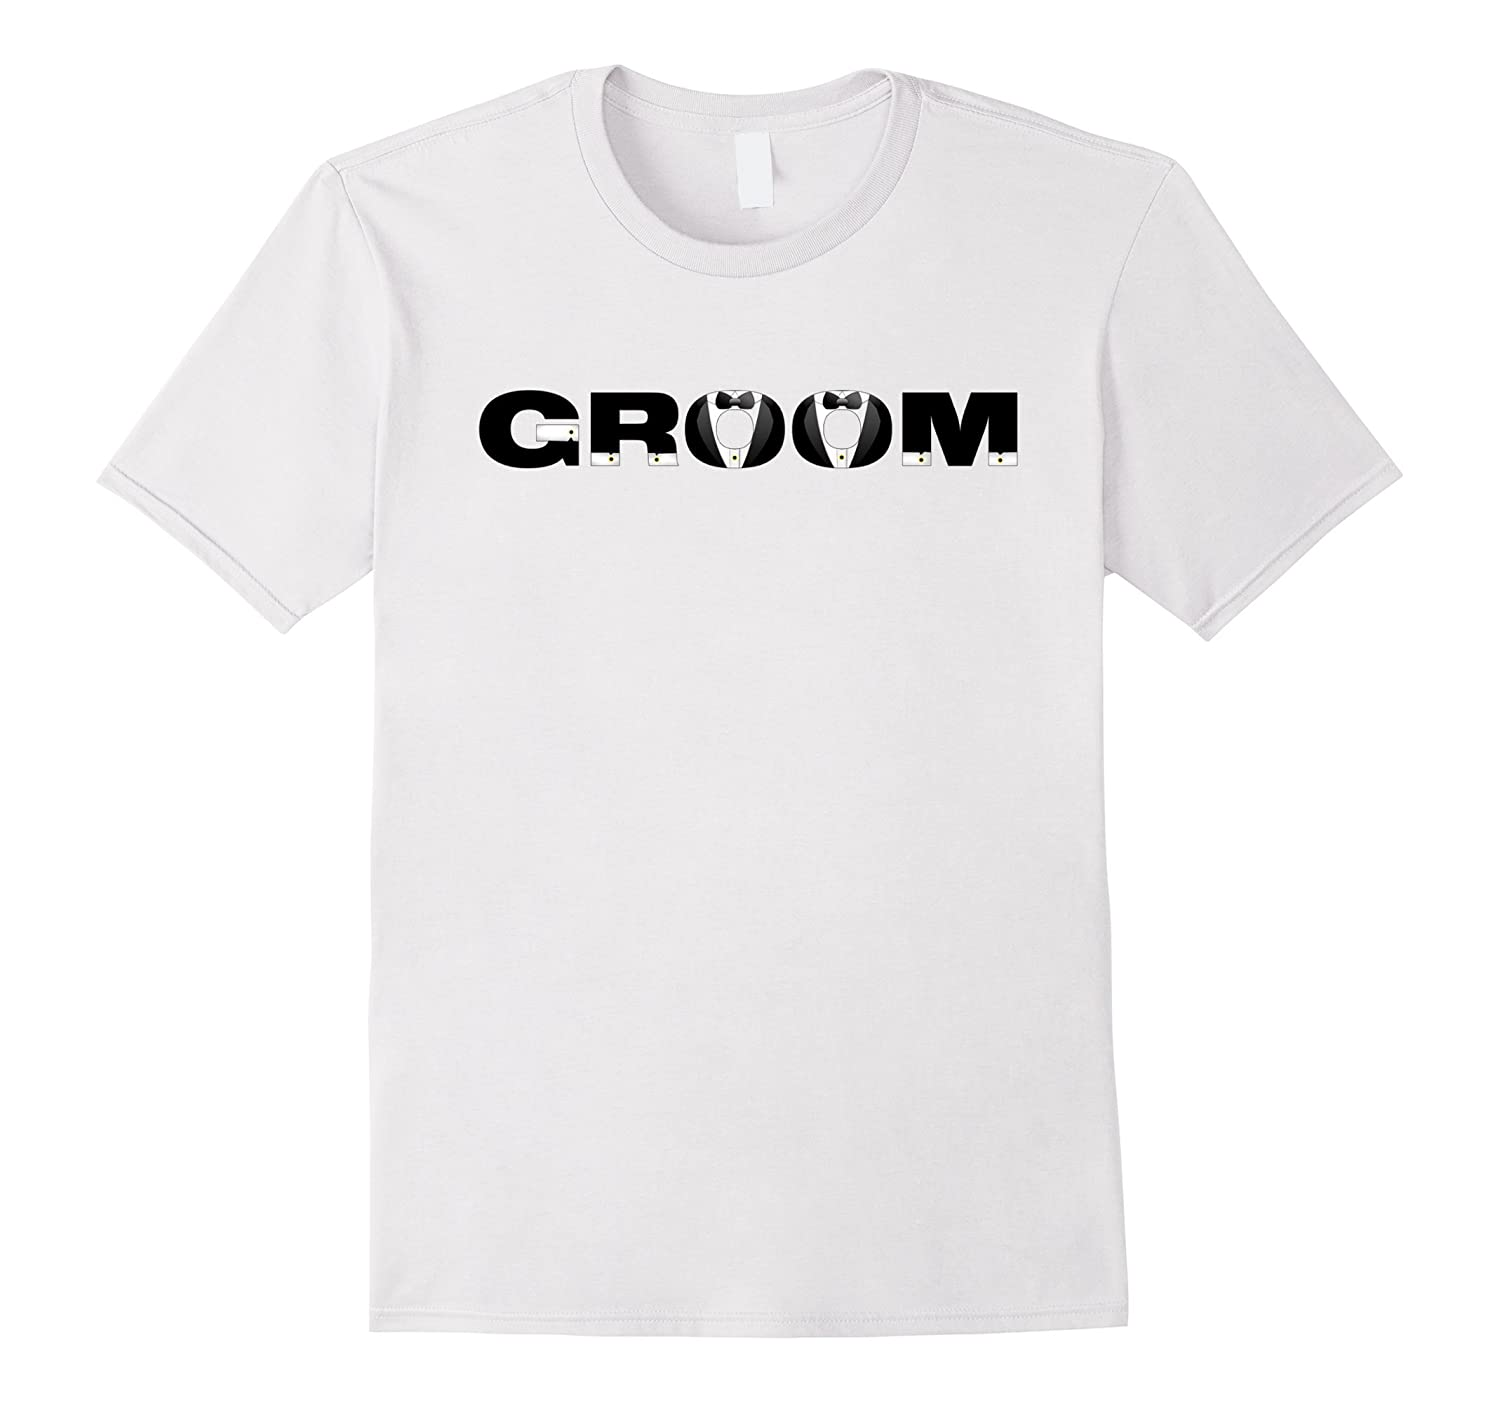 Groom Wedding Bachelor Party Tuxedo T-Shirt-Vaci